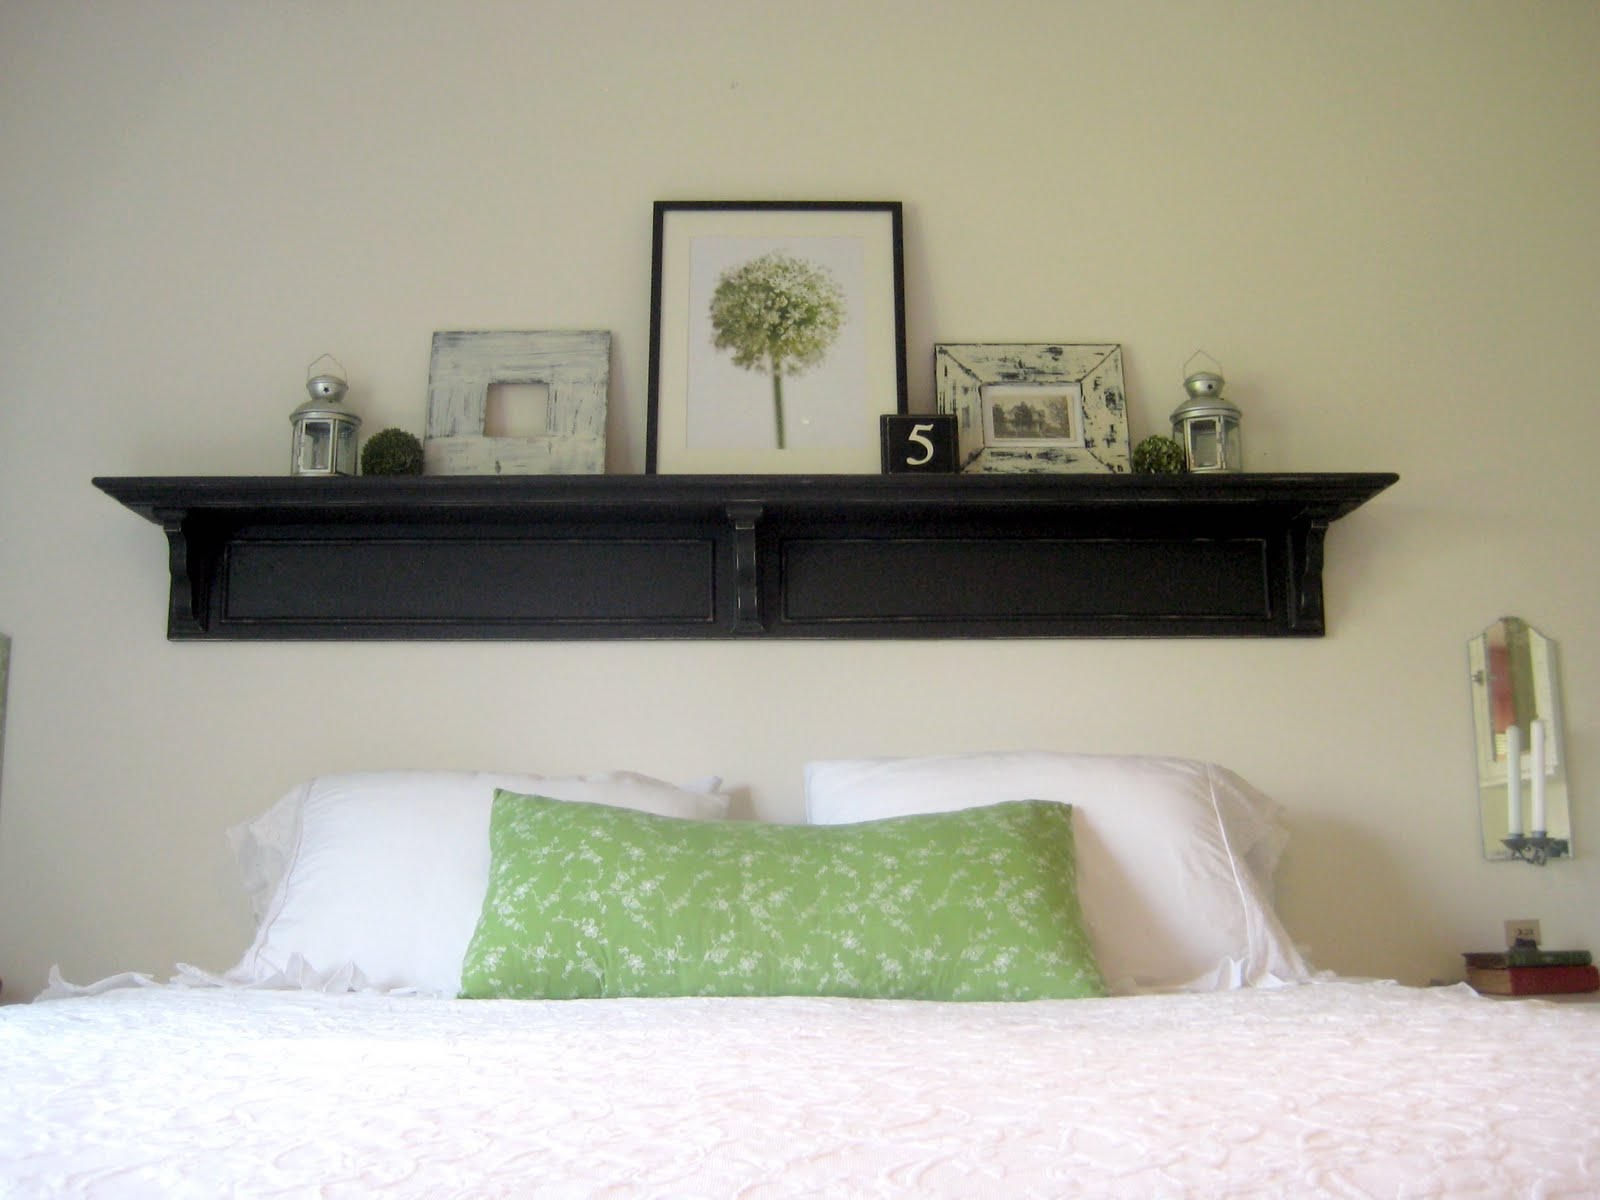 23 Surprisingly And Simple Bed Headboard Shelves Design ...